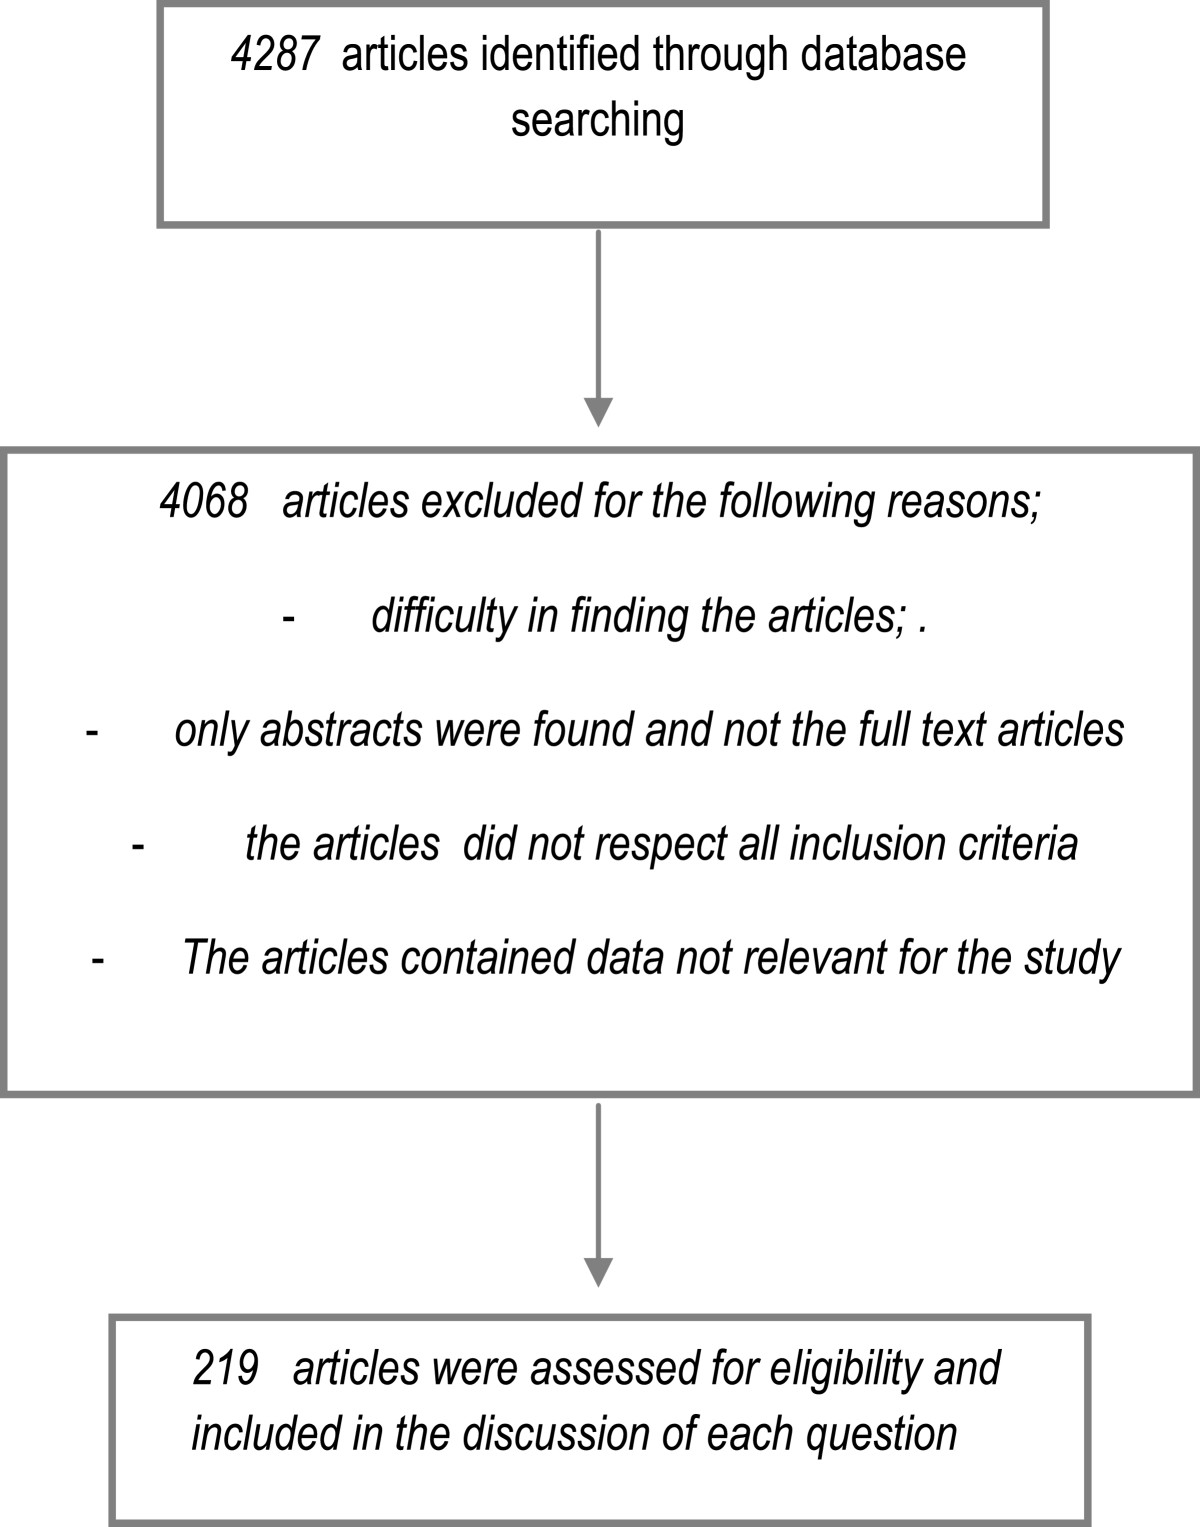 https://static-content.springer.com/image/art%3A10.1186%2F1471-2458-13-117/MediaObjects/12889_2012_Article_5285_Fig1_HTML.jpg